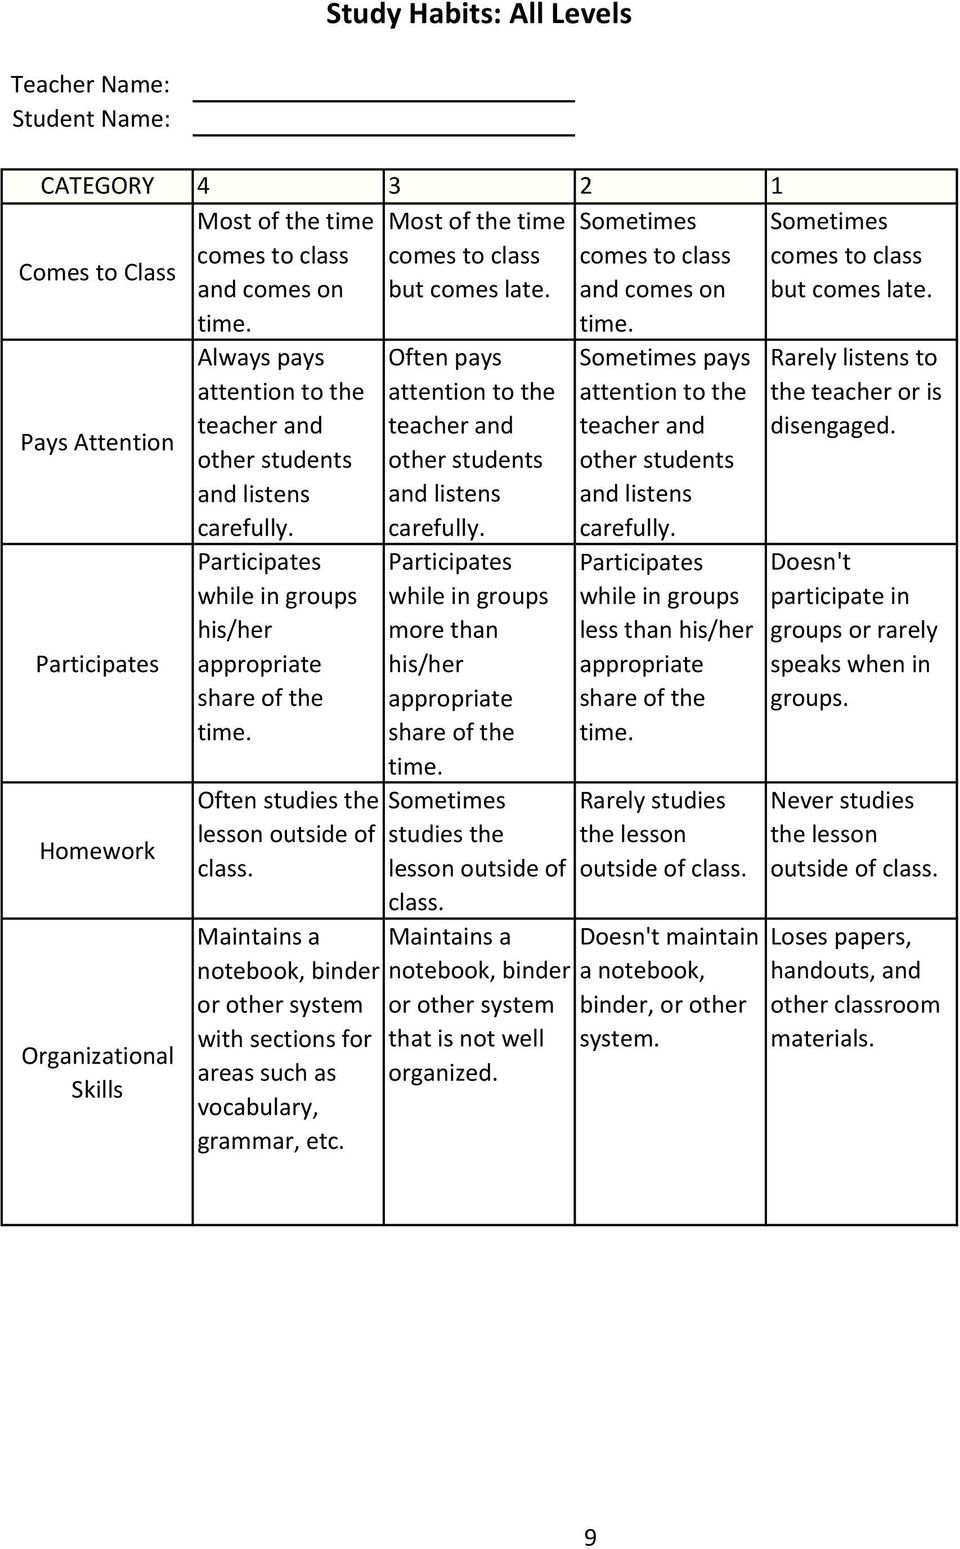 Participates while in groups his/her share of the Often studies the lesson outside of class. Maintains a notebook, binder or other system with sections for areas such as vocabulary, grammar, etc.